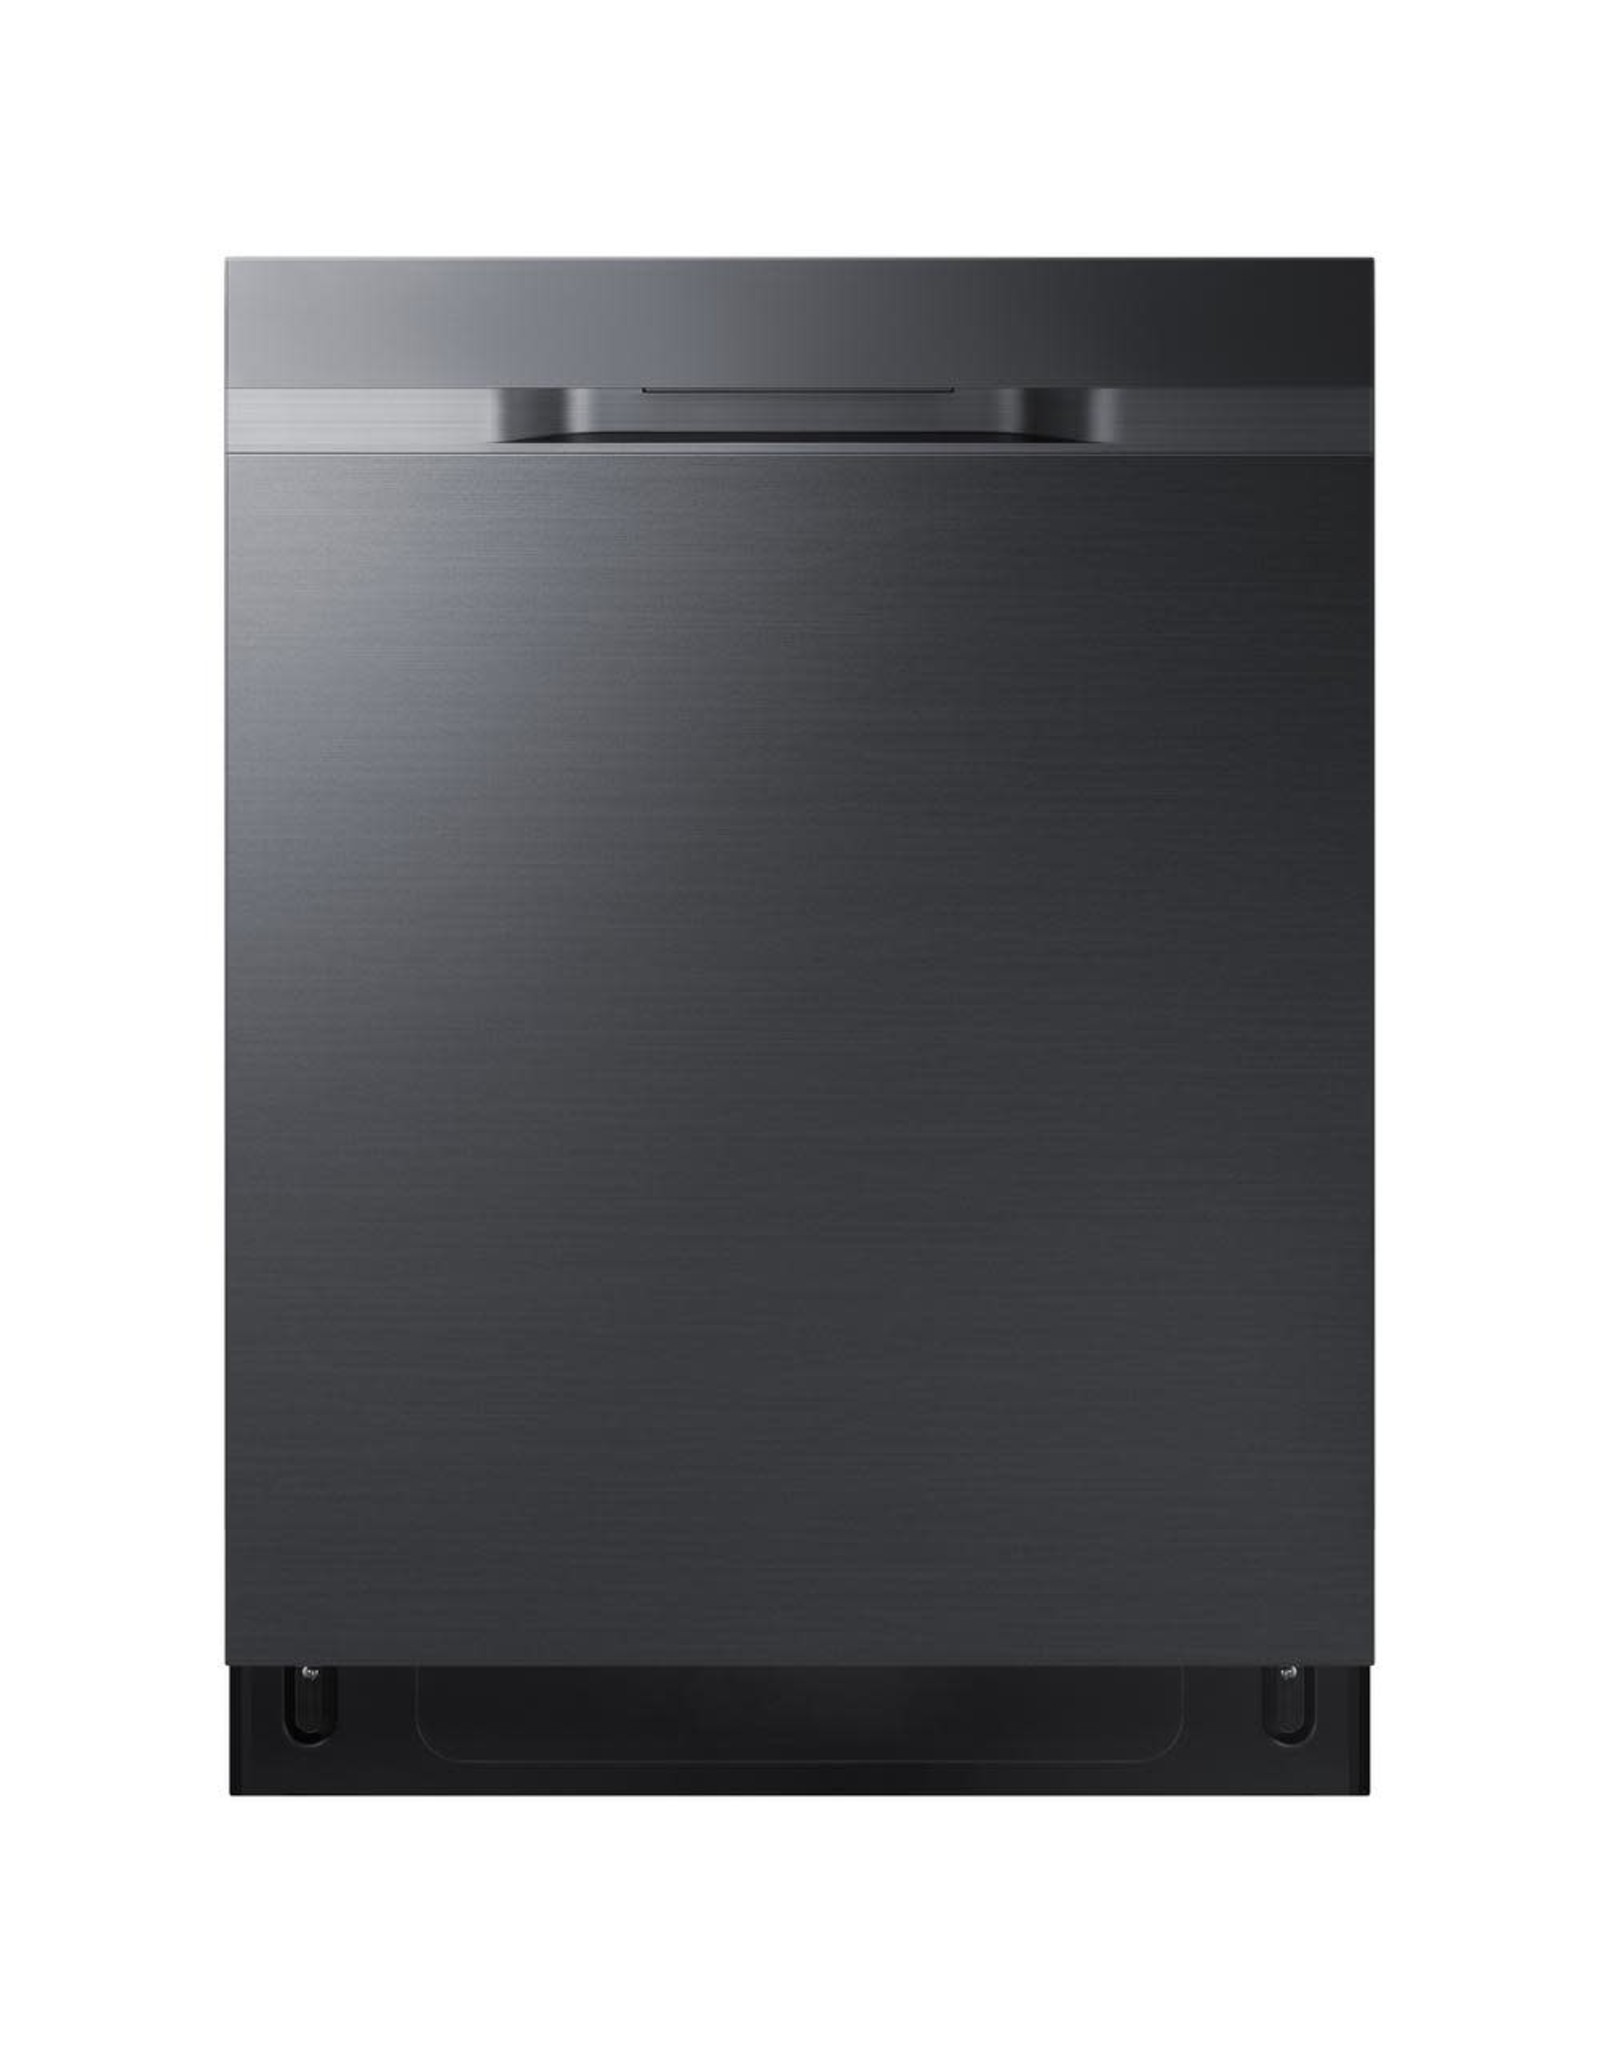 SAMSUNG Samsung 24 in Top Control StormWash Tall Tub Dishwasher in Fingerprint Resistant Black Stainless with AutoRelease Dry, 48 dBA